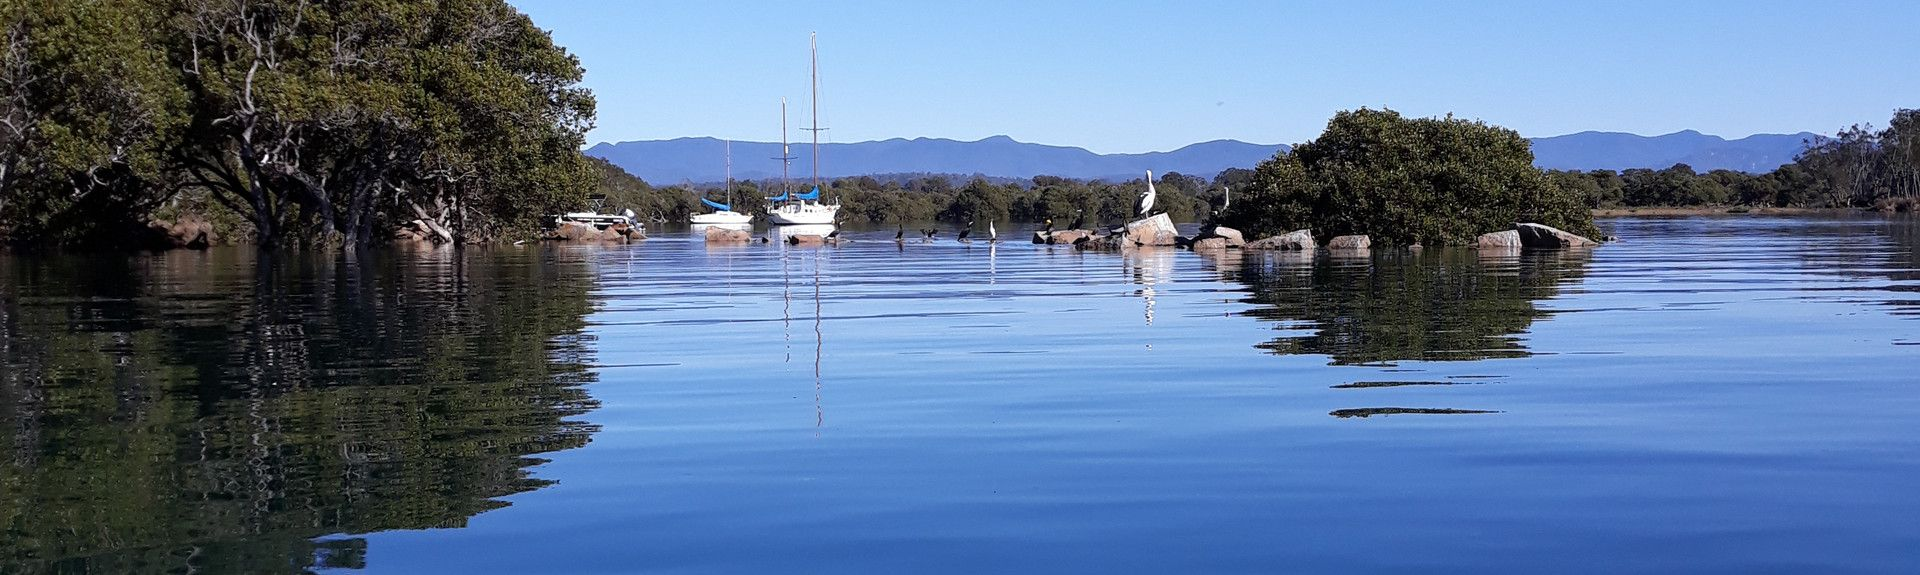 Batemans Bay Marina, Batemans Bay, New South Wales, Australia